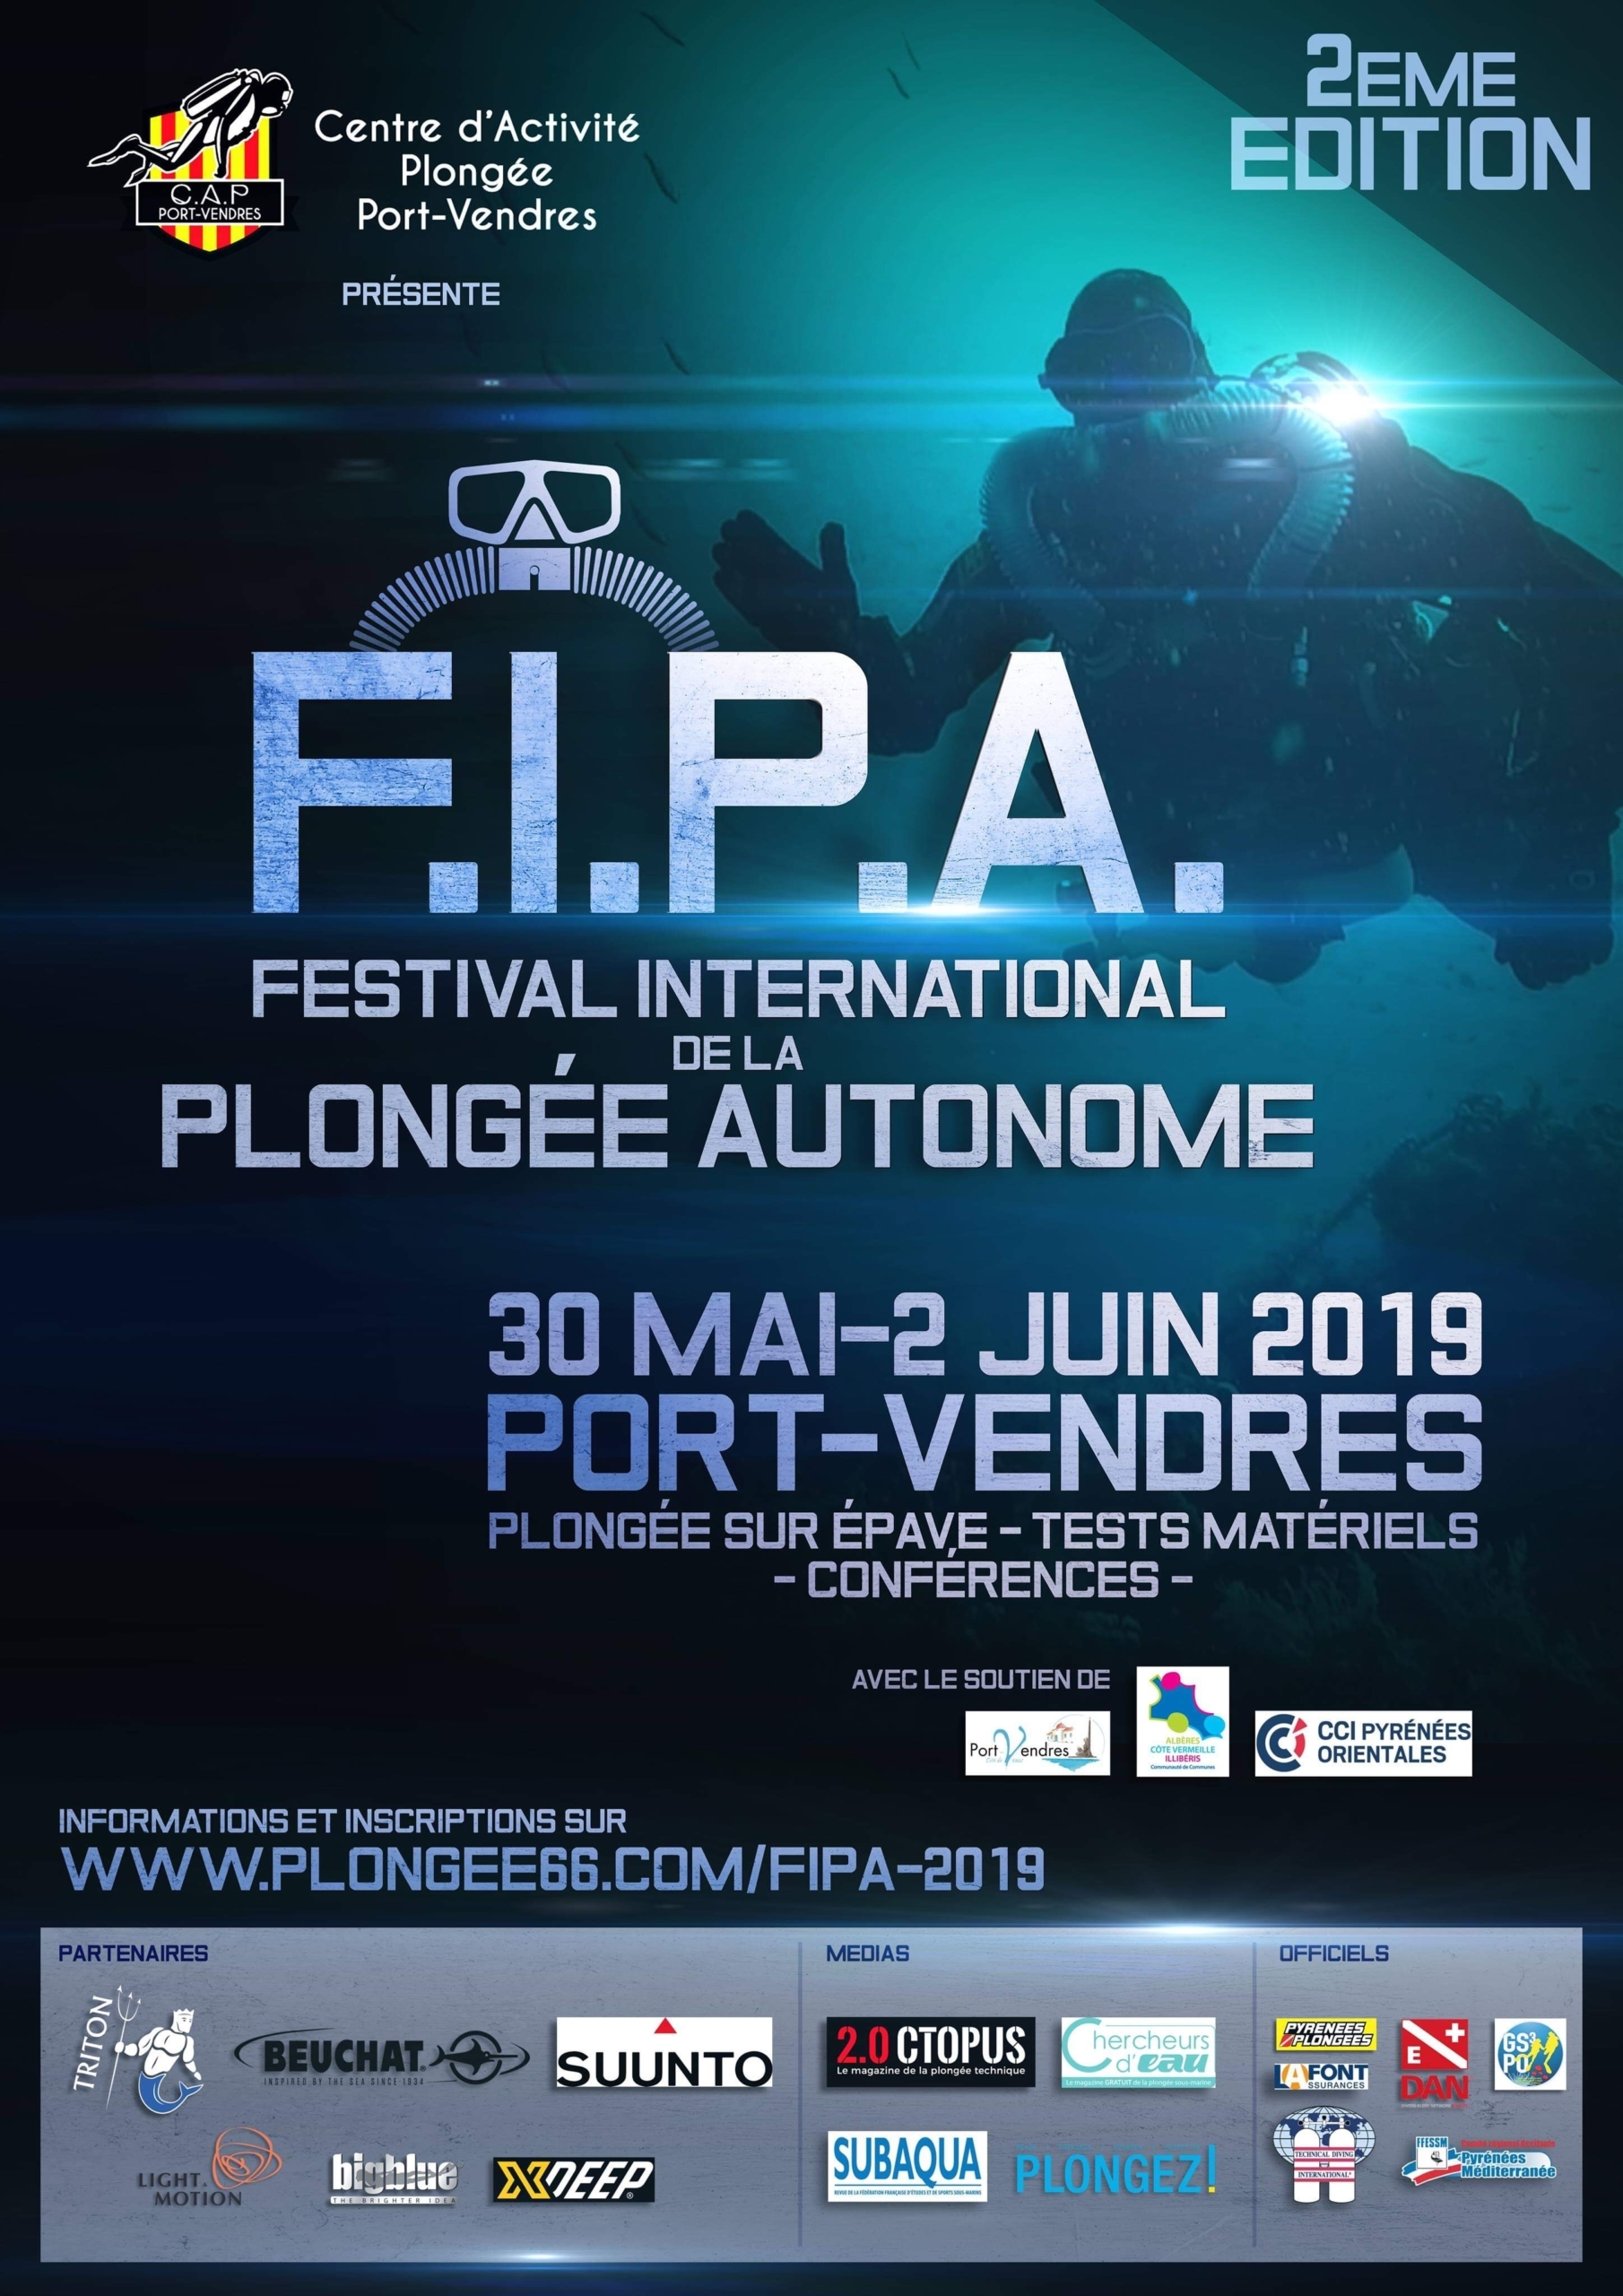 Festival International de la Plongée Autonome 2019